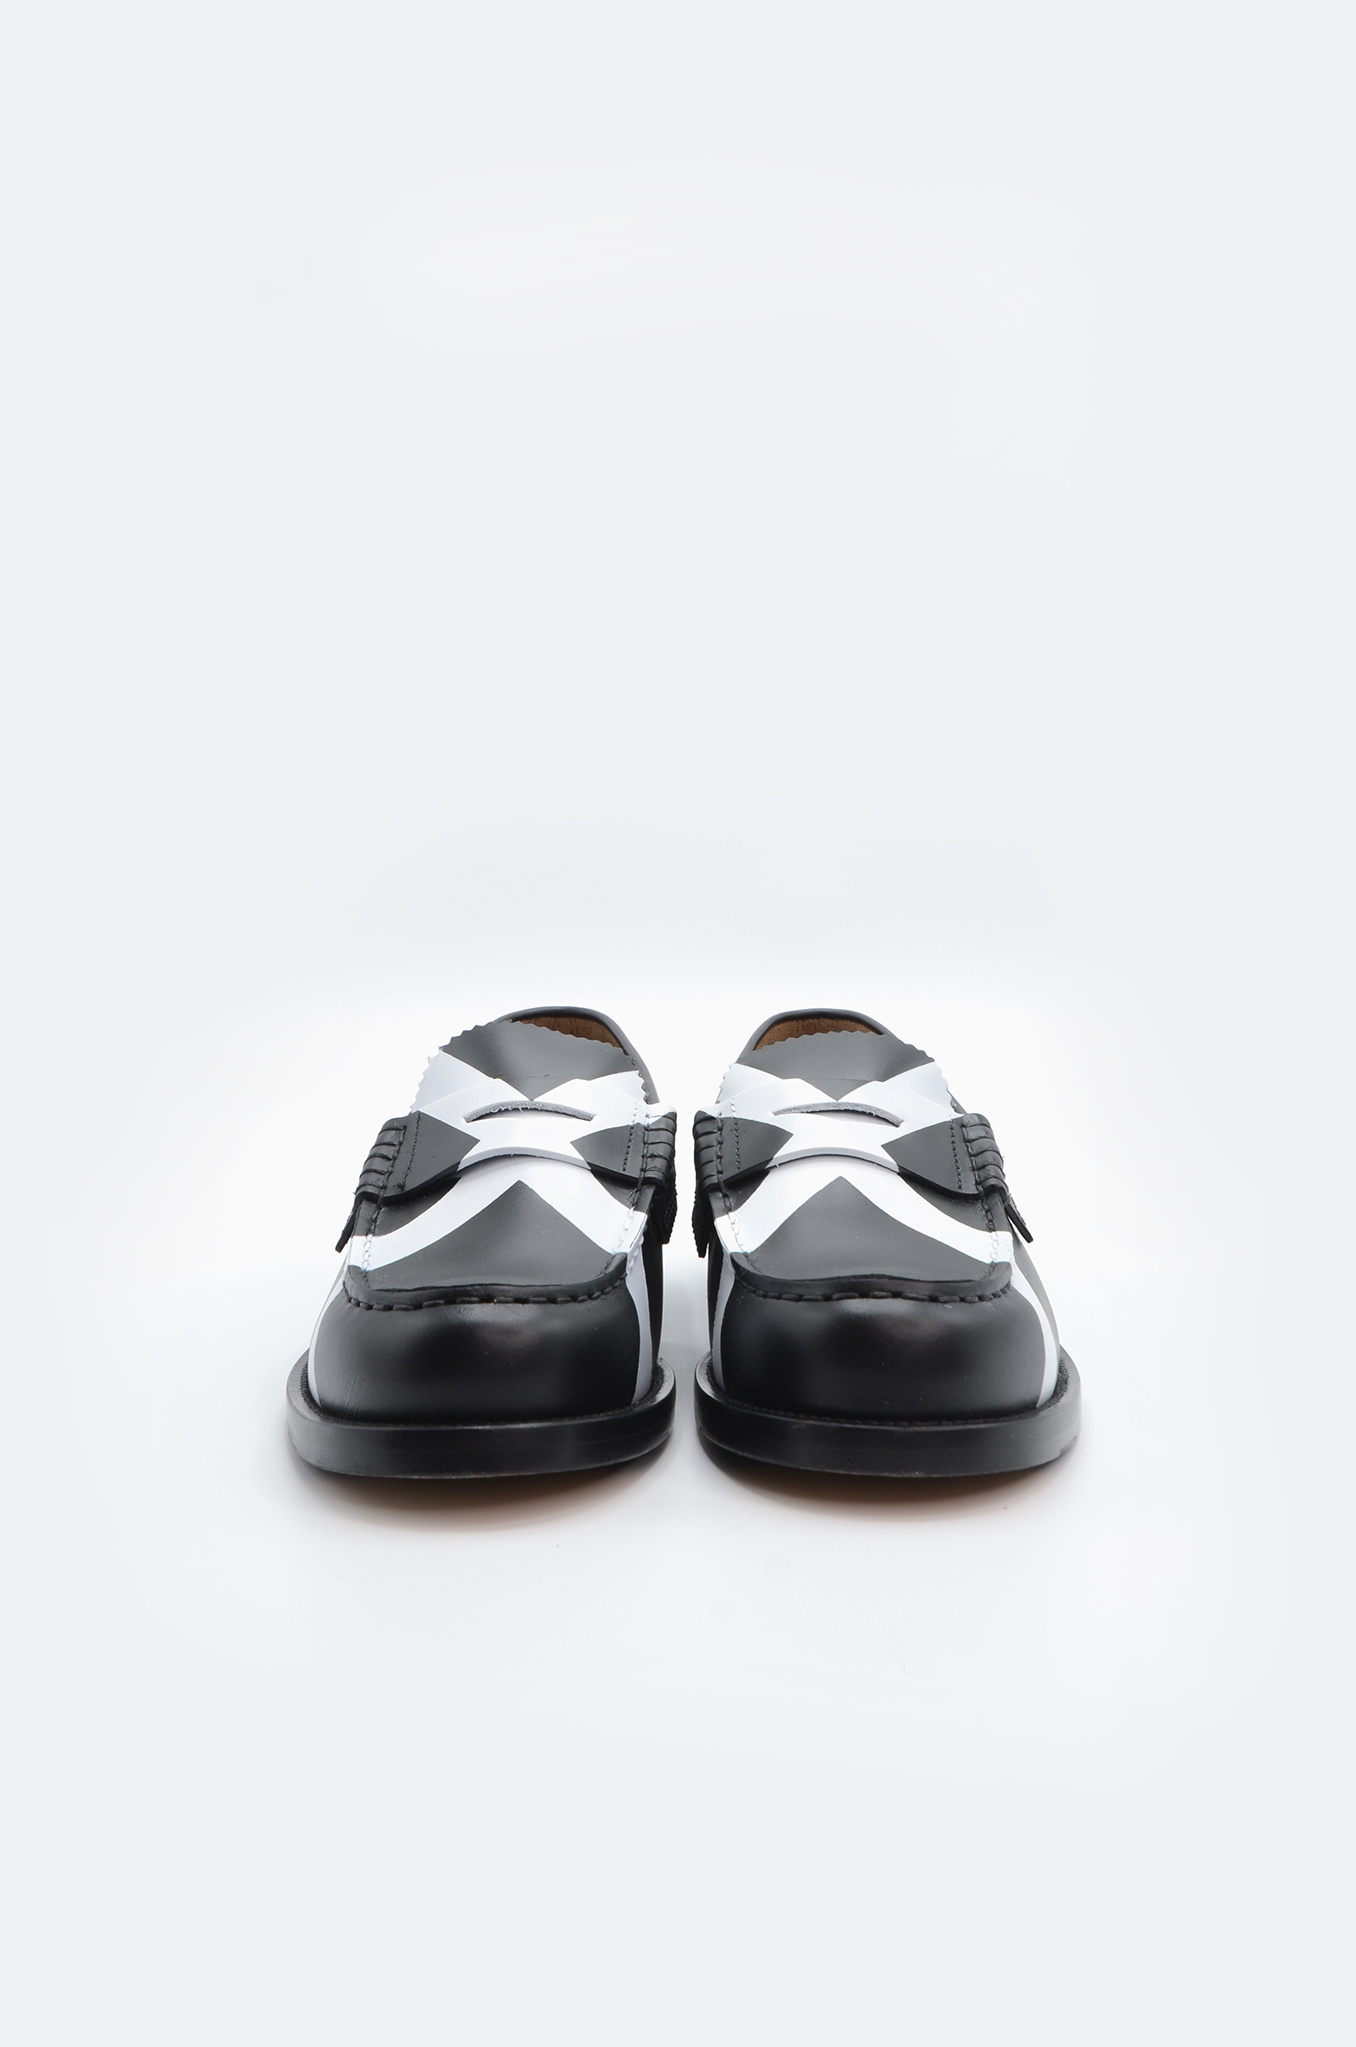 PENNY LOAFER IN BLACK X WHITE-3